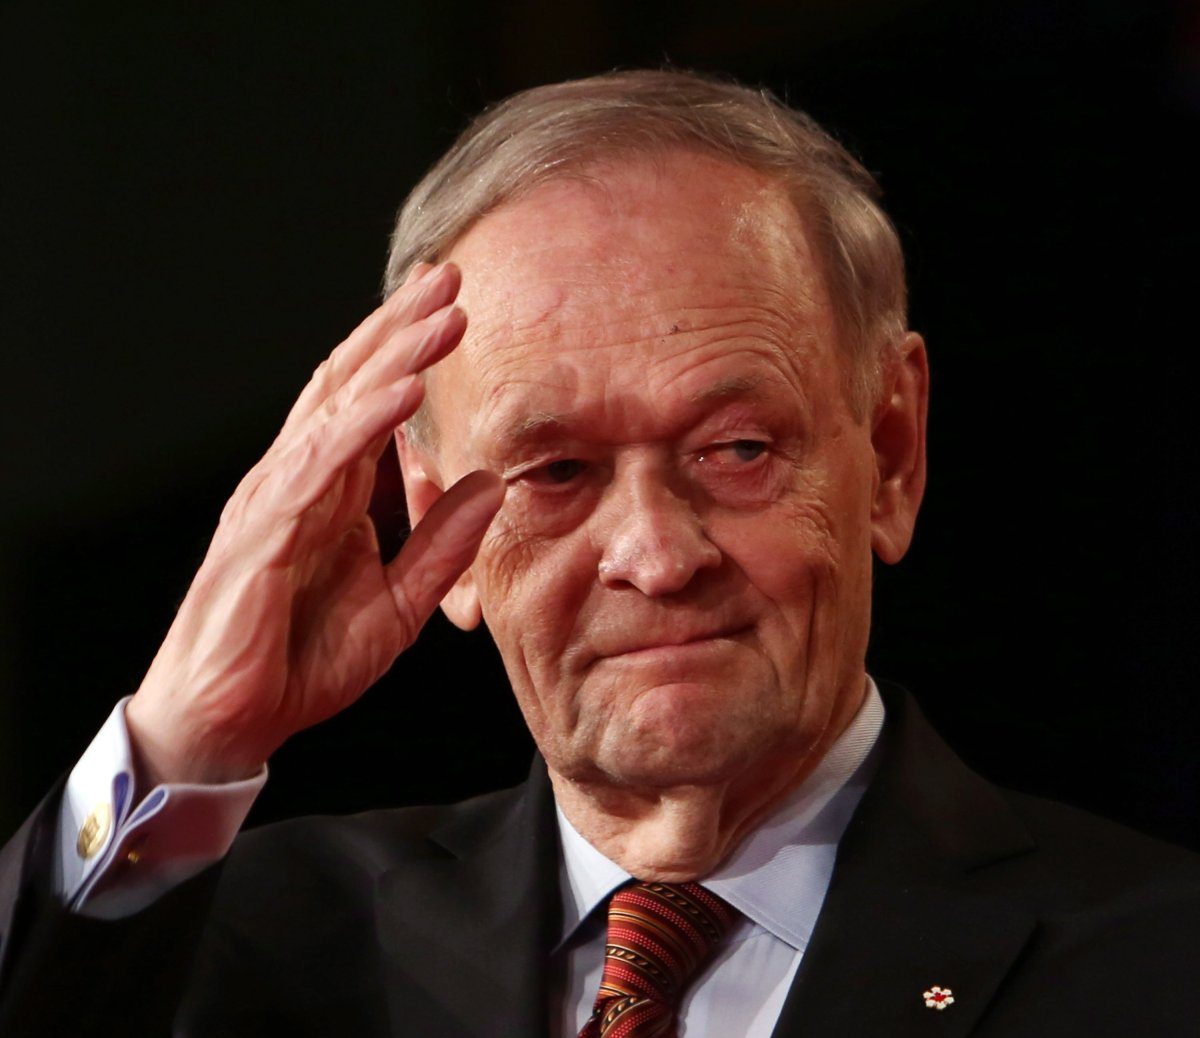 Former prime minister Jean Chretien saluts after addressing the Liberal Party leadership in Ottawa, Sunday April 14, 2013.